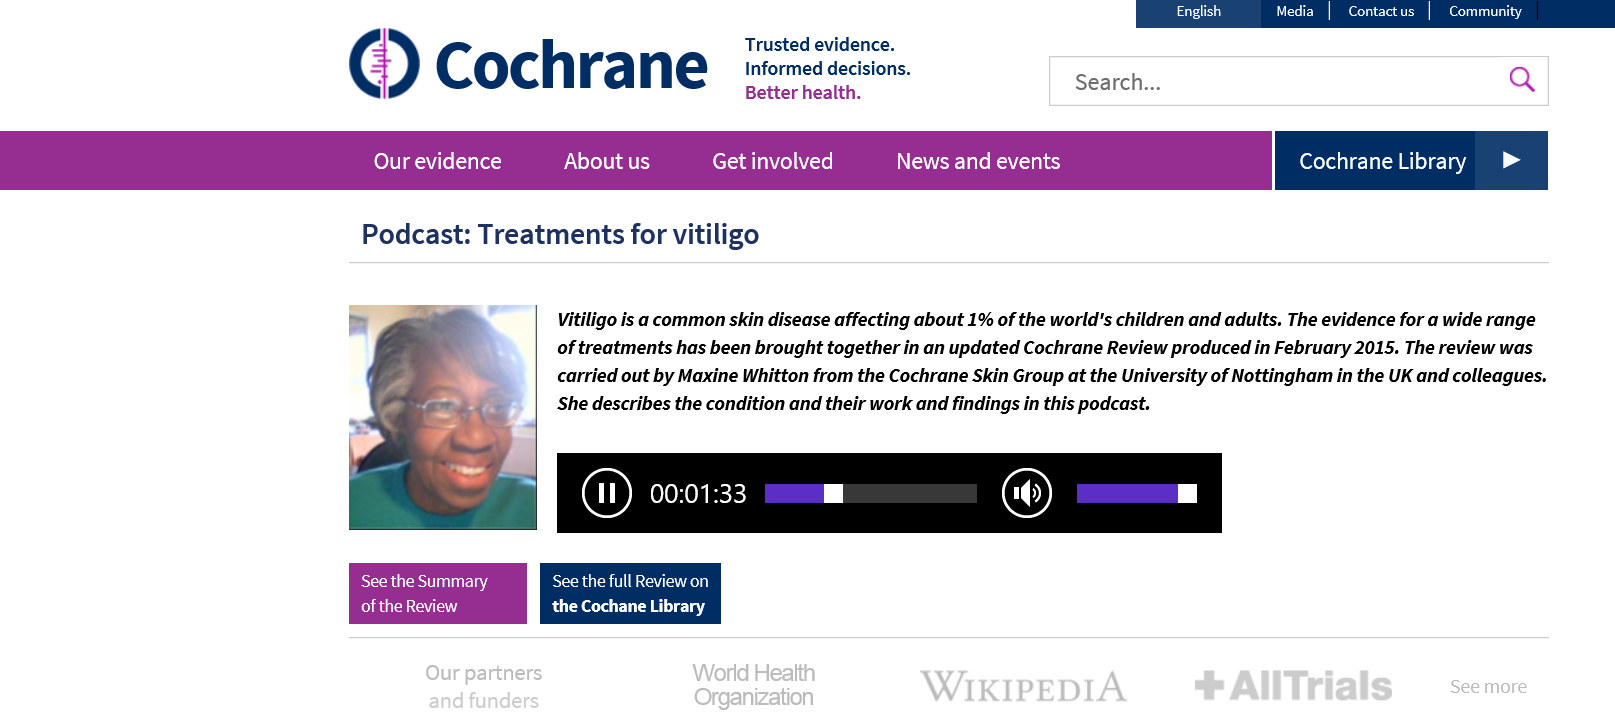 Podcast http://www.cochrane.org/podcasts/10.